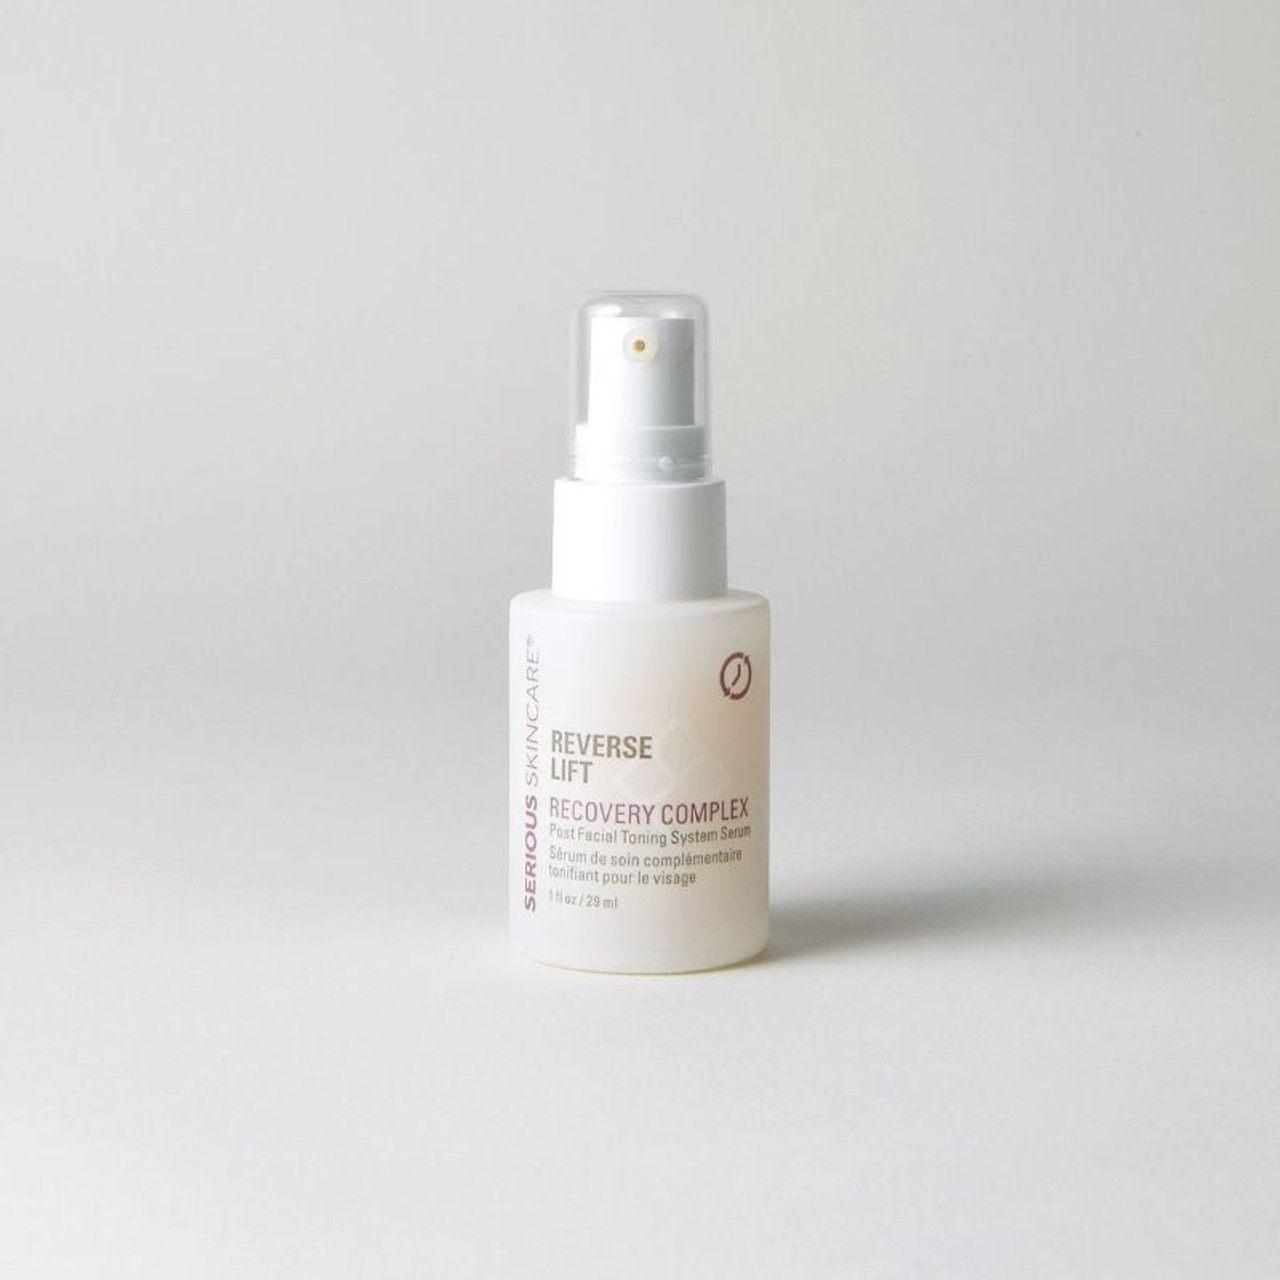 Serious Skin Reverse Lift Recovery Complex Post Facial Toning System Serum